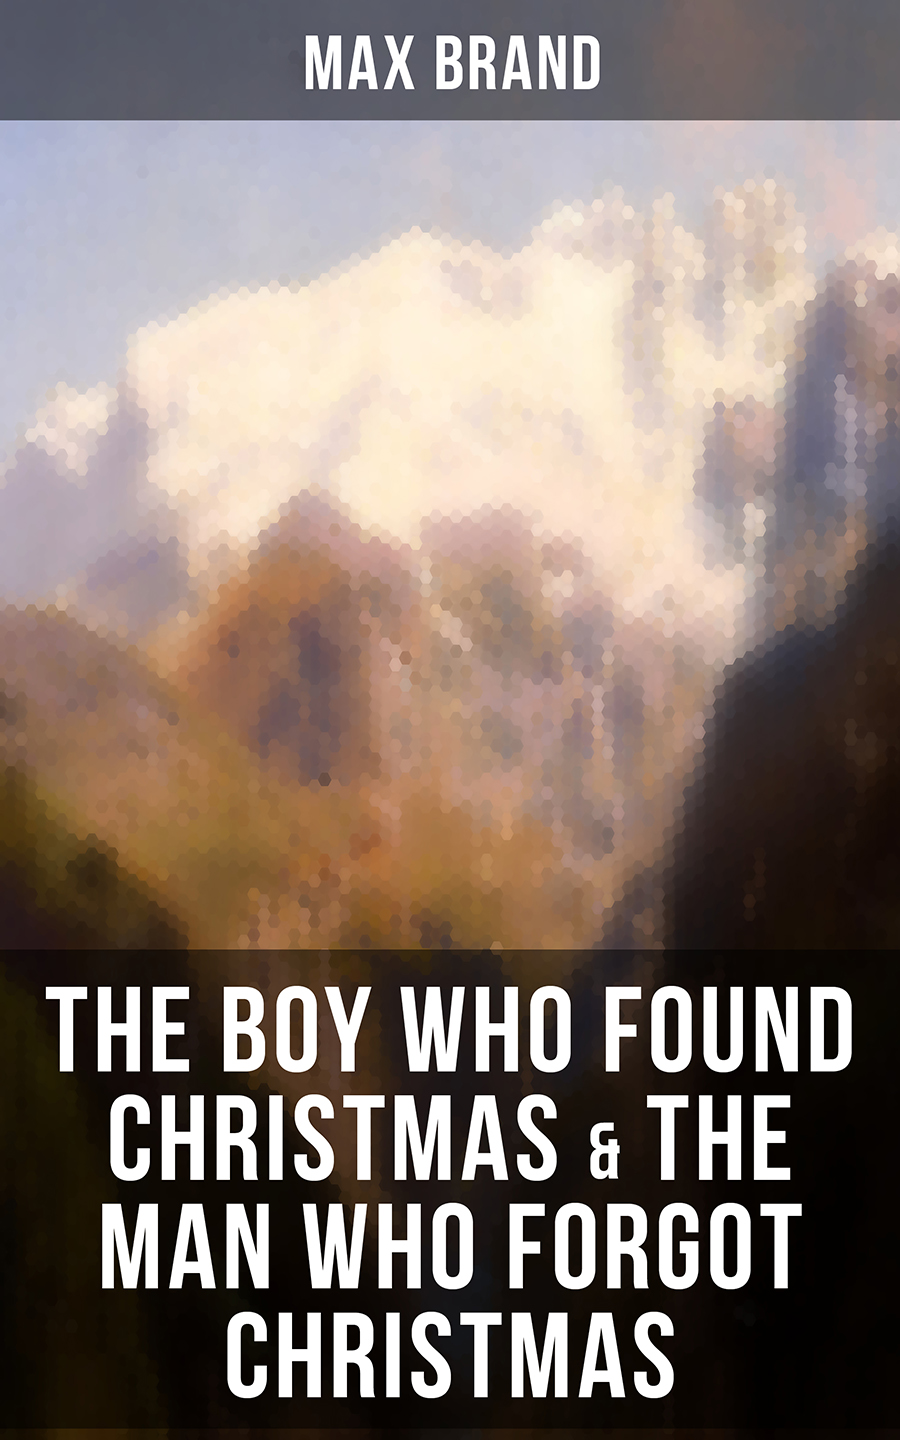 THE BOY WHO FOUND CHRISTMAS & THE MAN WHO FORGOT CHRISTMAS